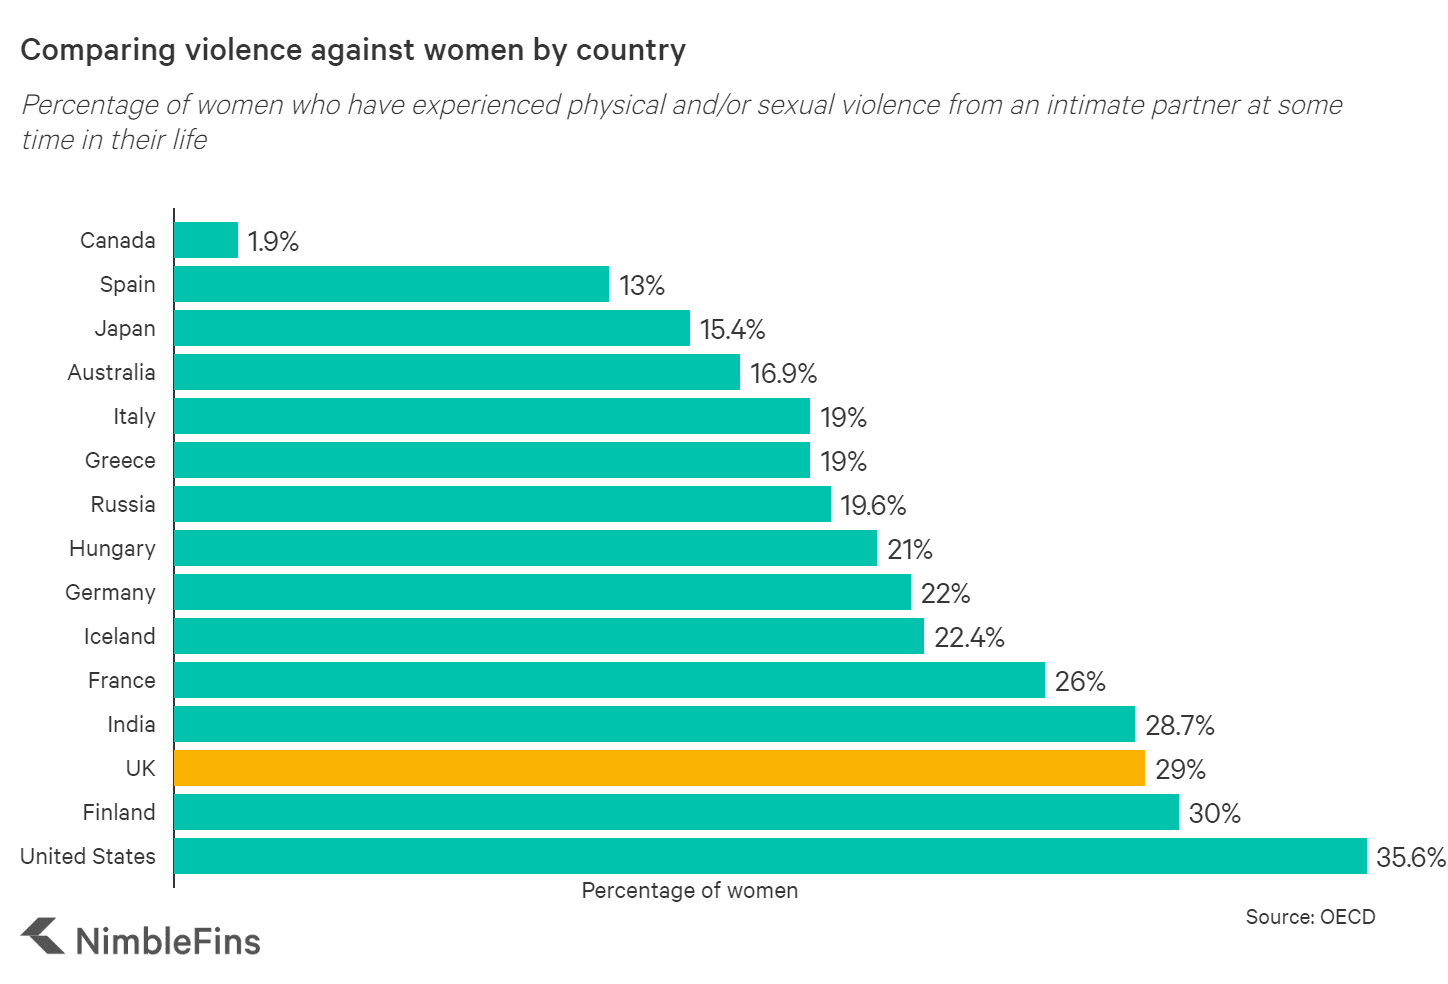 Comparing violence against women by country